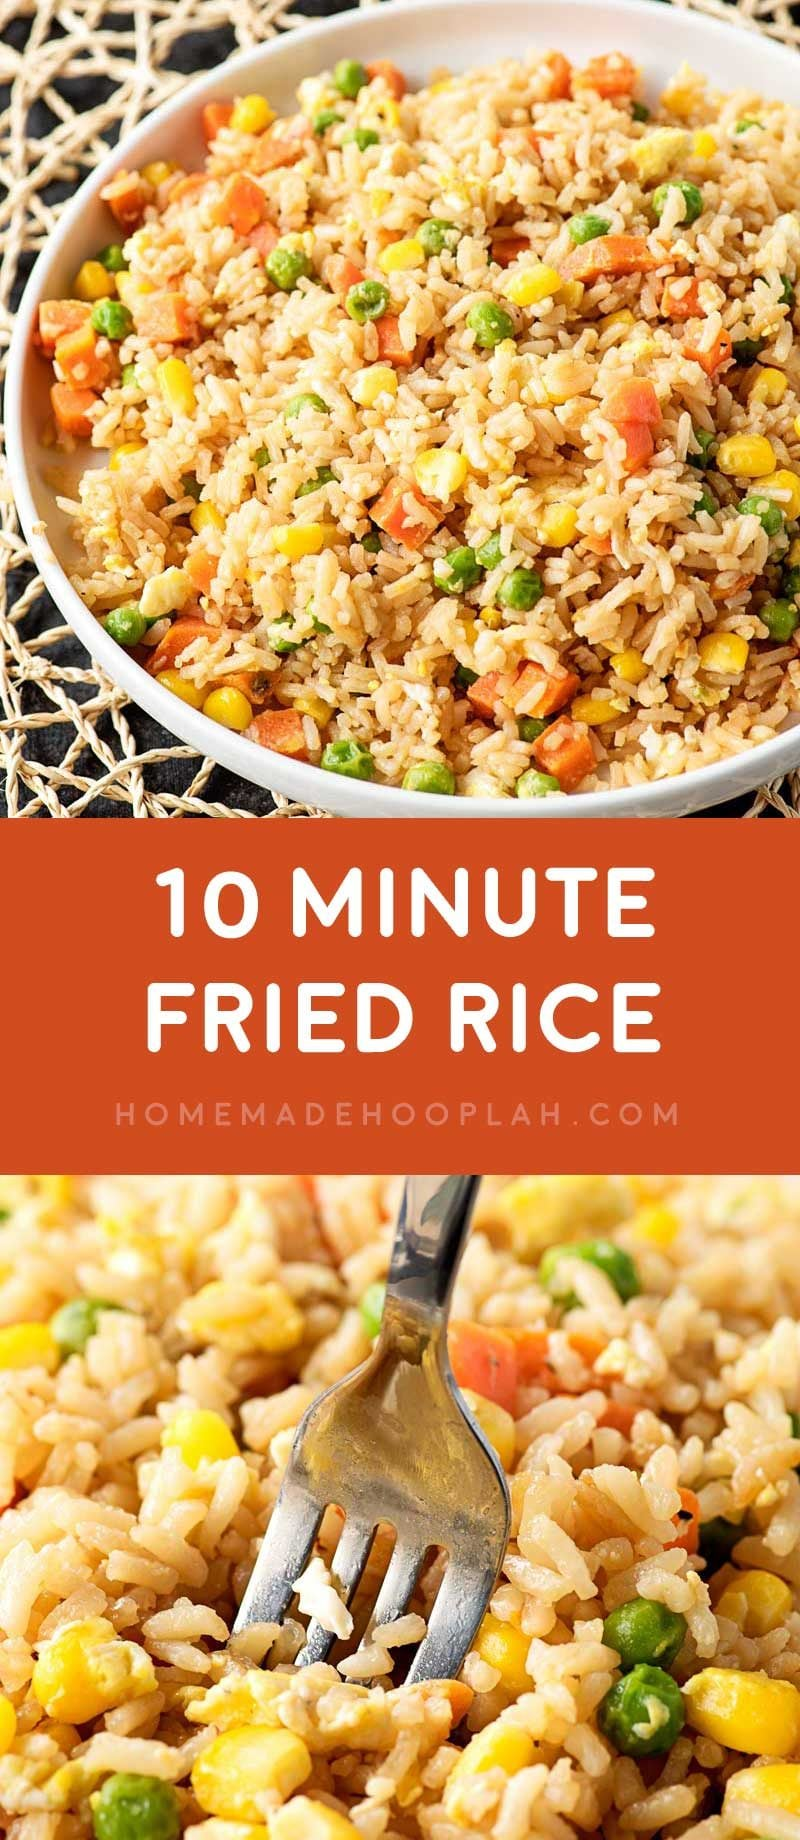 10 Minute Fried Rice! Need a new go-to side dish for busy weeknights? Fried rice is always a great staple, and this easy recipe makes it easy to whip up in just 10 minutes! | HomemadeHooplah.com